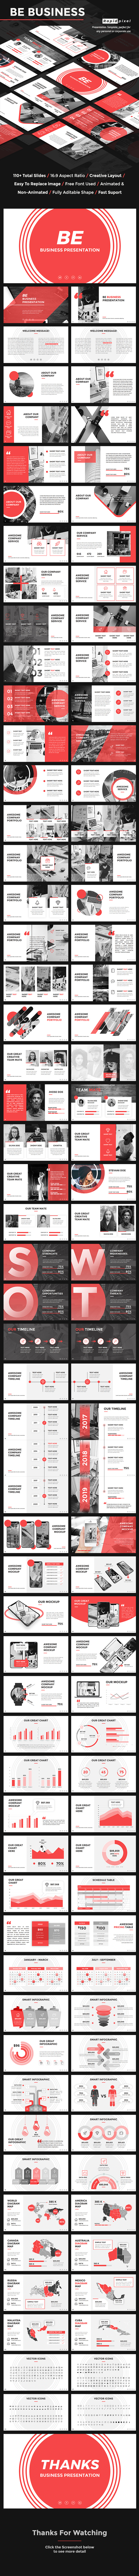 Be Business PowerPoint - Business PowerPoint Templates